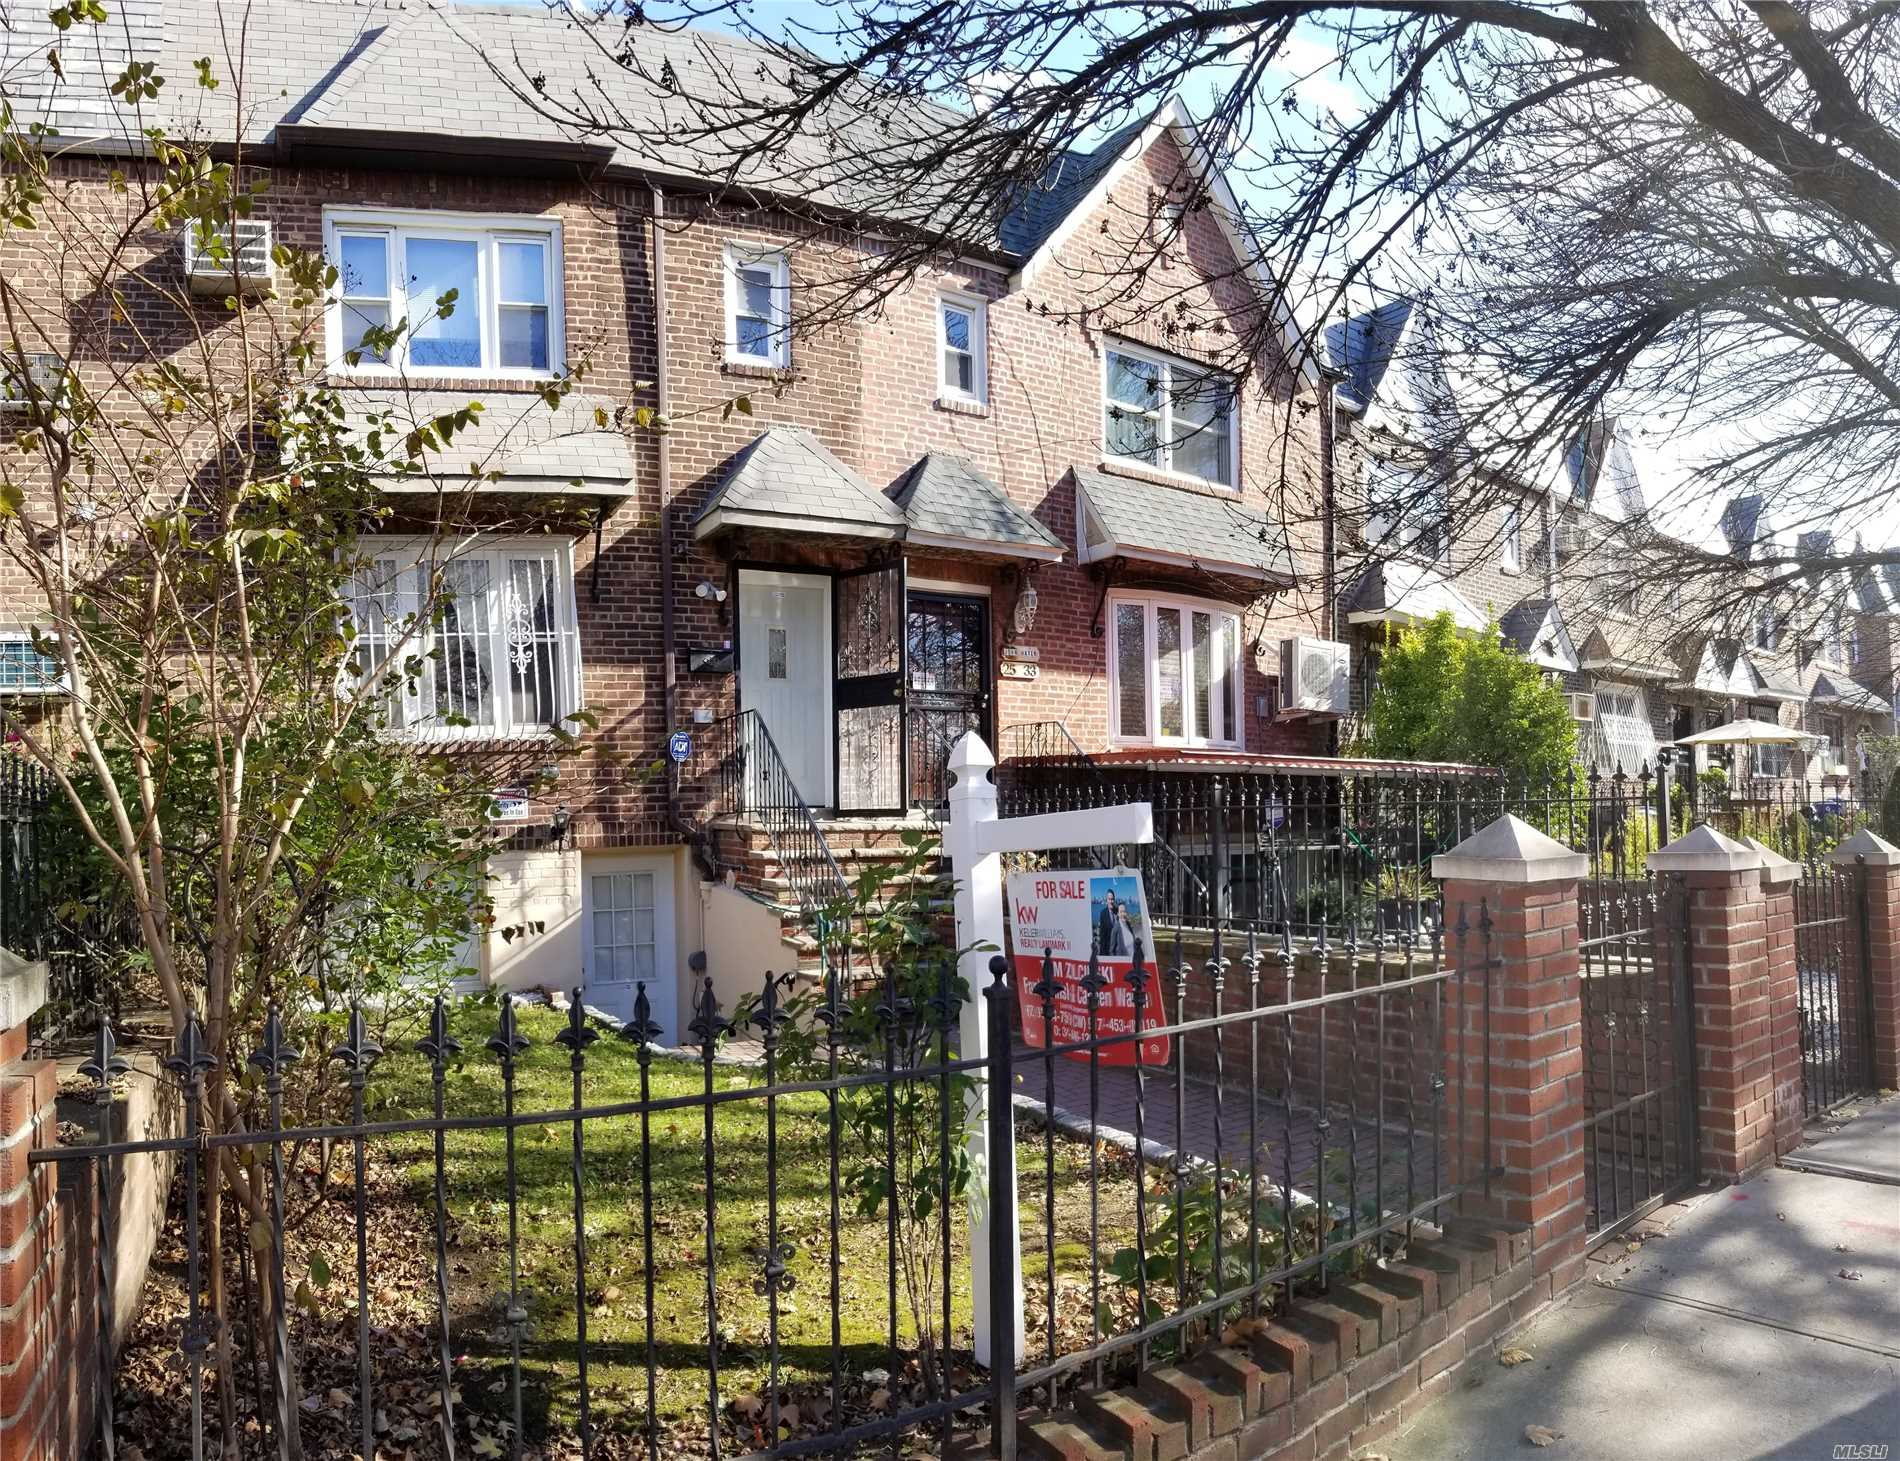 Wow! Talk About Location!! This 2 Family Jackson Heights Beauty Has It All! Location, Condition, & Price!! Have You Ever Wanted To Life Near A Park?(Gorman Playground 100 Yds Away!) How About Home Depot, Astoria Blvd And The G.C.Pwy Are Just Blocks Away! Have You Ever Wanted To Have Parking?(3Cars!) Have You Ever Wanted Large Bedrooms & Closets? What About A Warm Inviting Home In Move-In-Condition? Well Here's Your Chance! Hurry This Is A Super 4 Bedrm 2.5 Bth Winner!